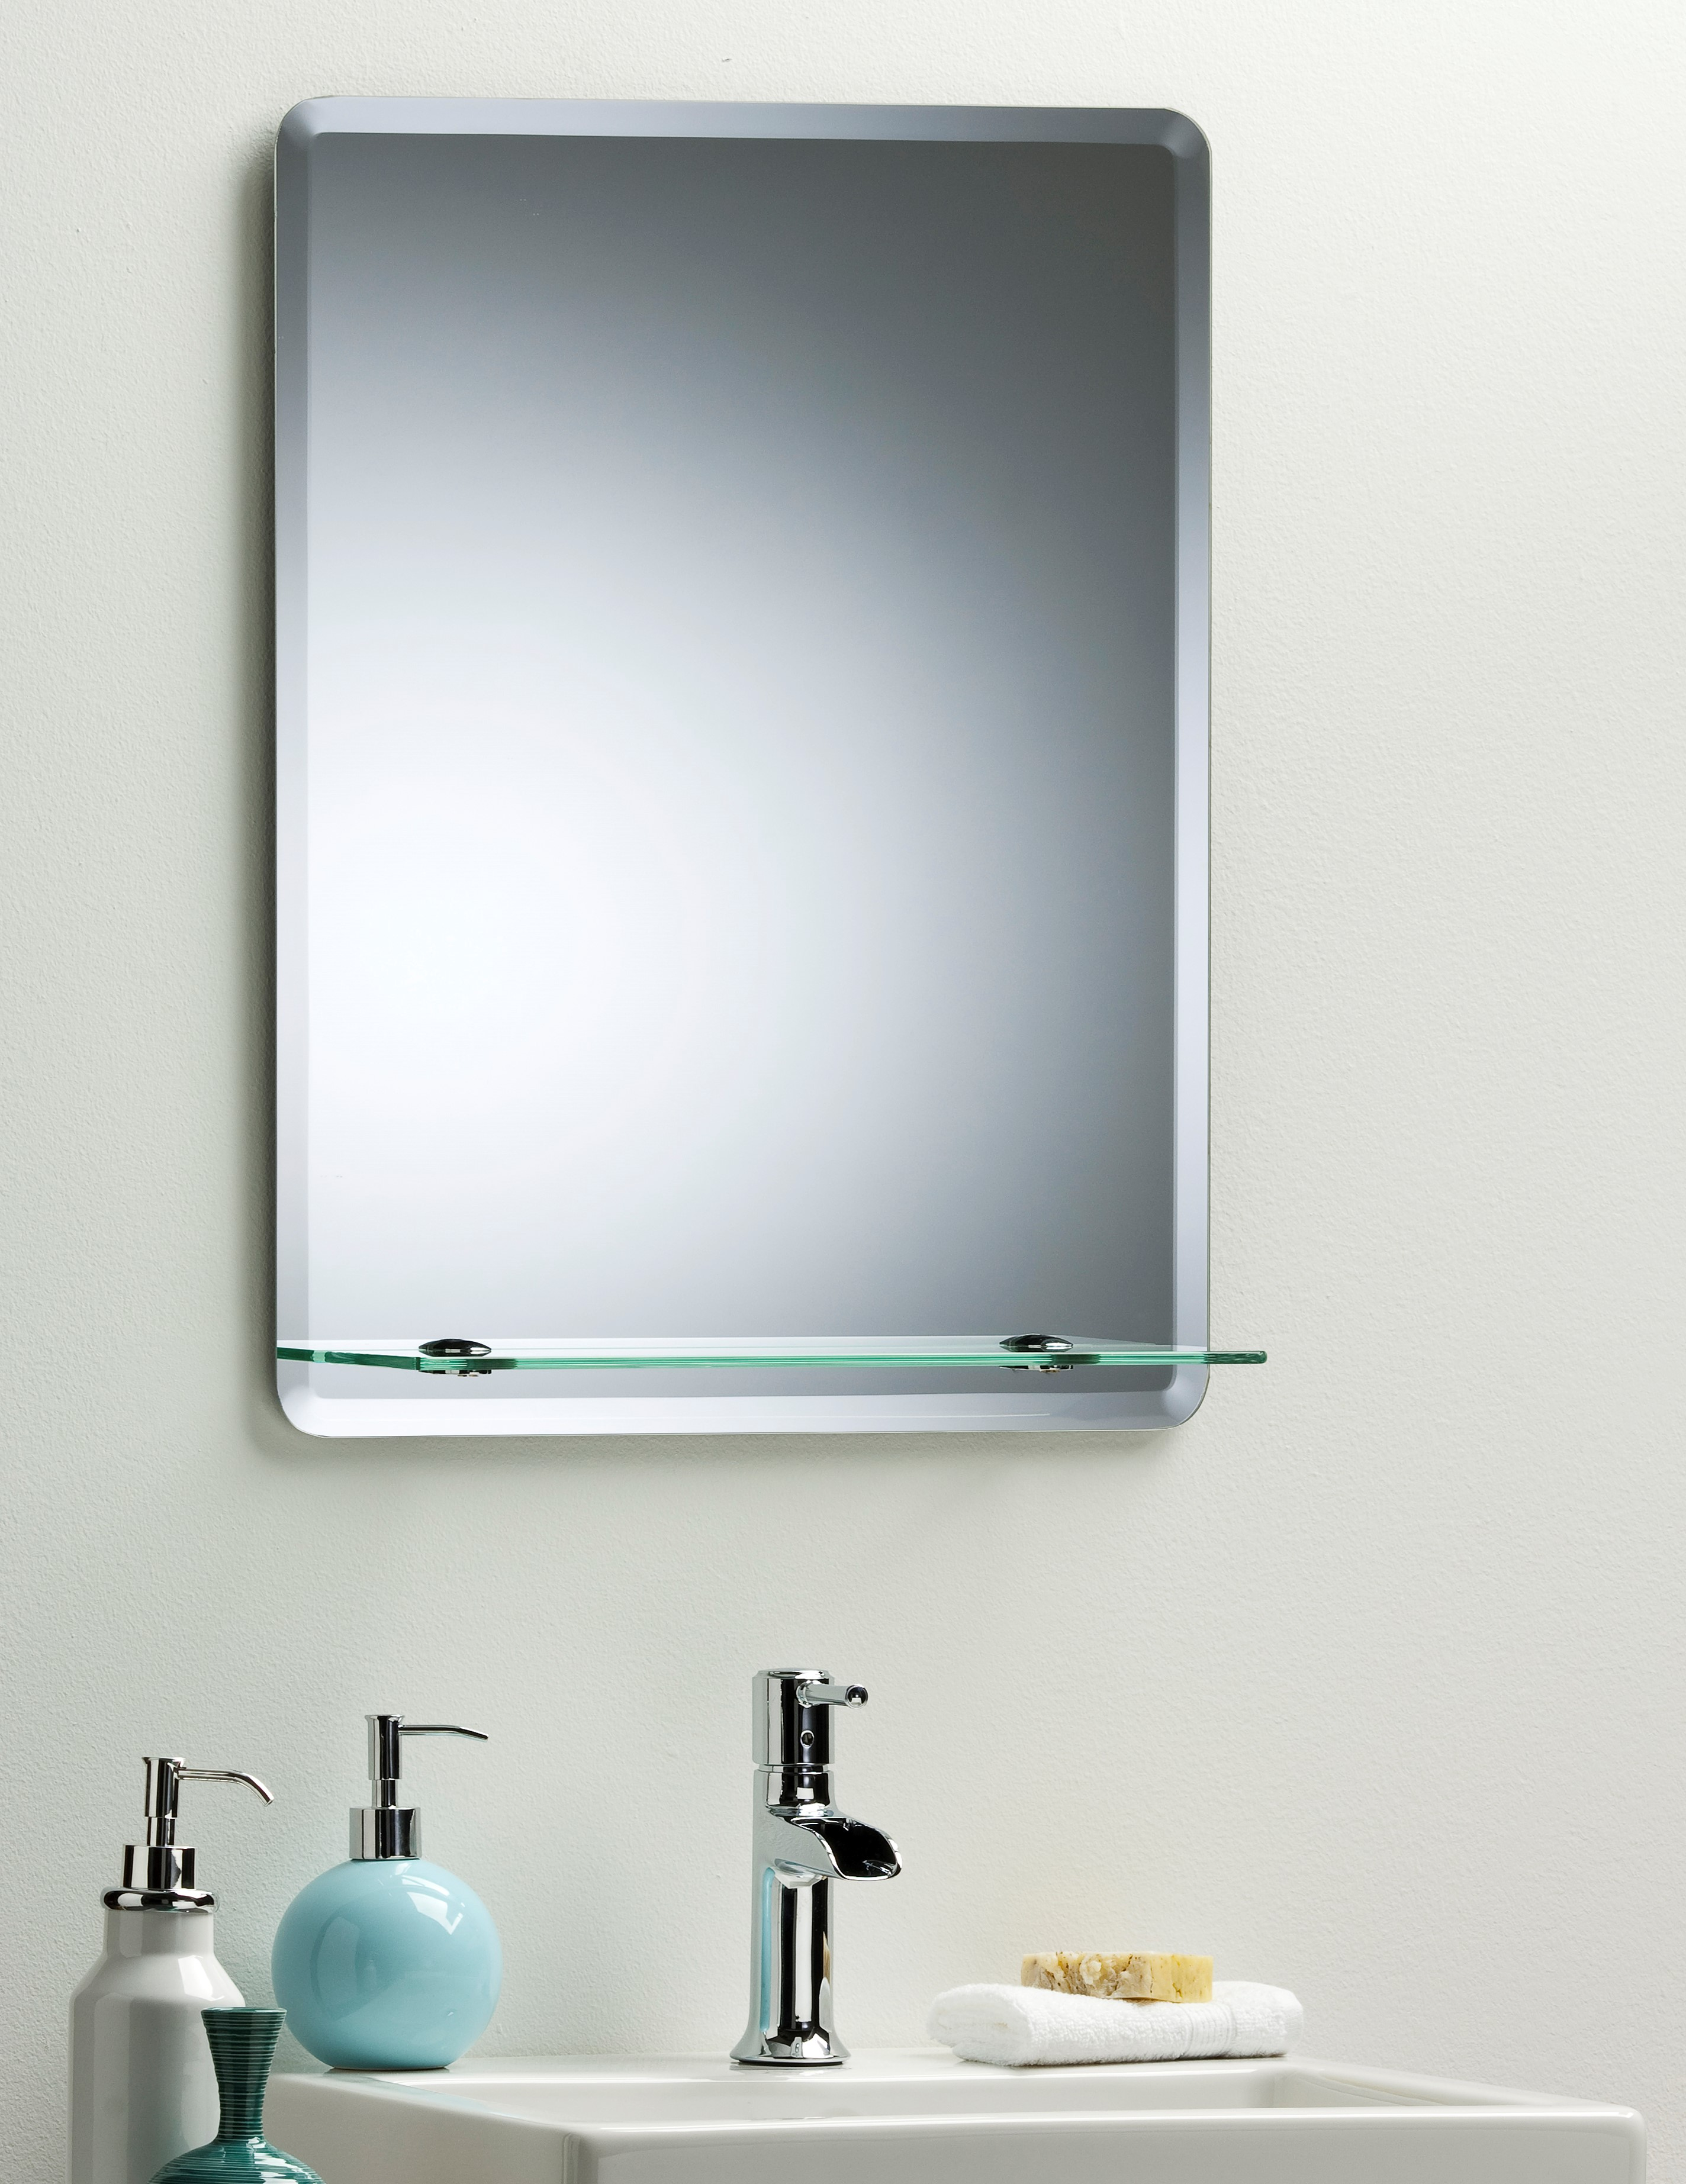 Wc Spiegel Bathroom Mirror Modern Stylish Rectangular With Shelf